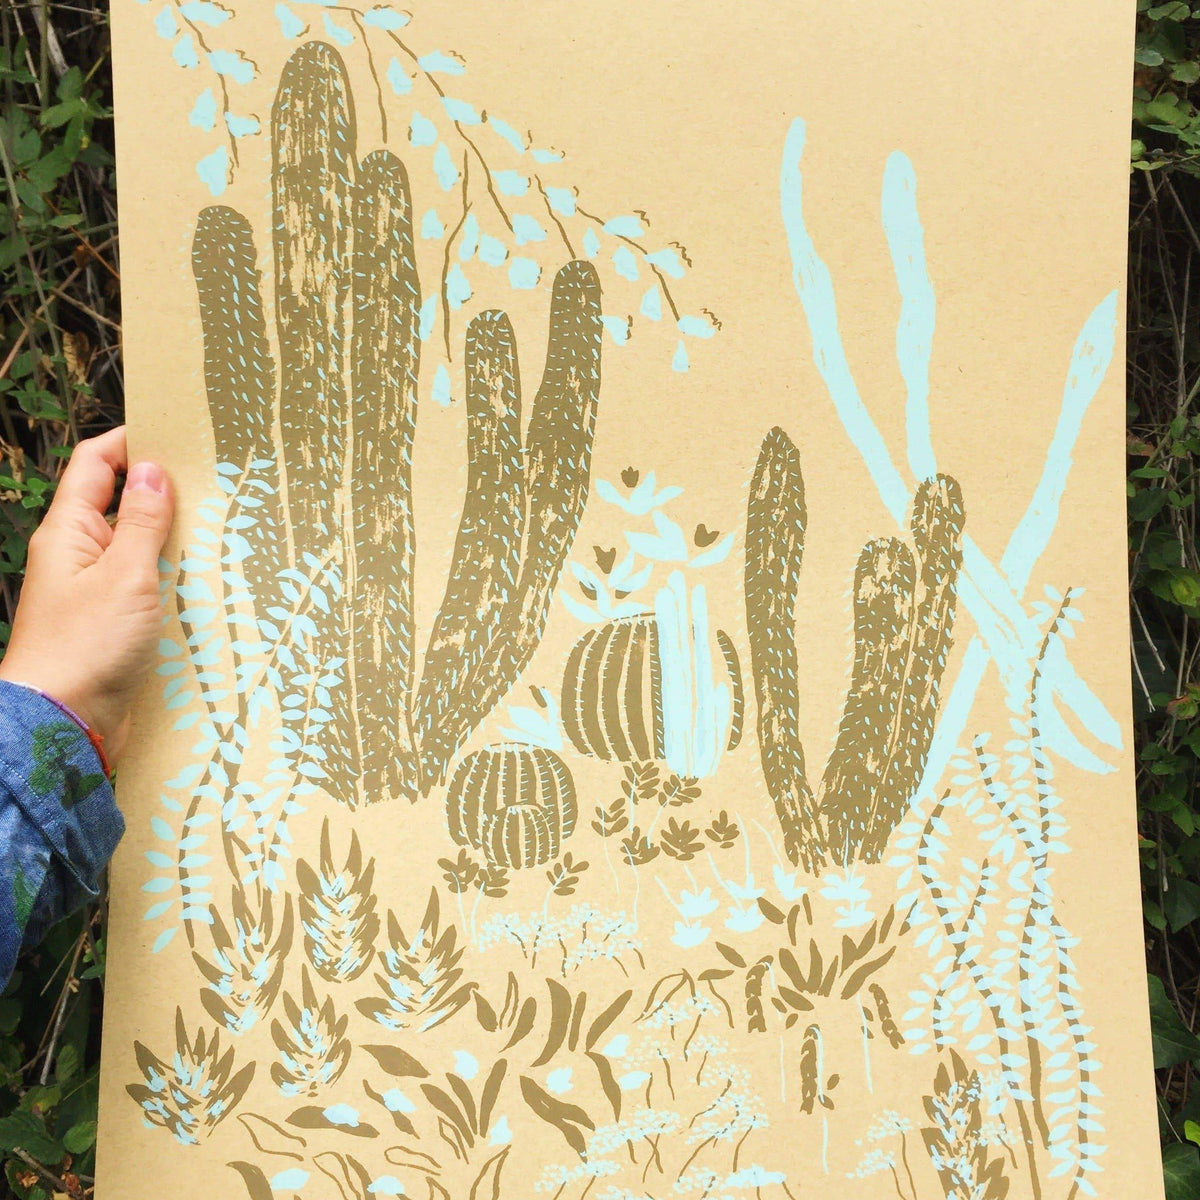 Small Adventure - Cacti Vignette Screen Print Limited Edition